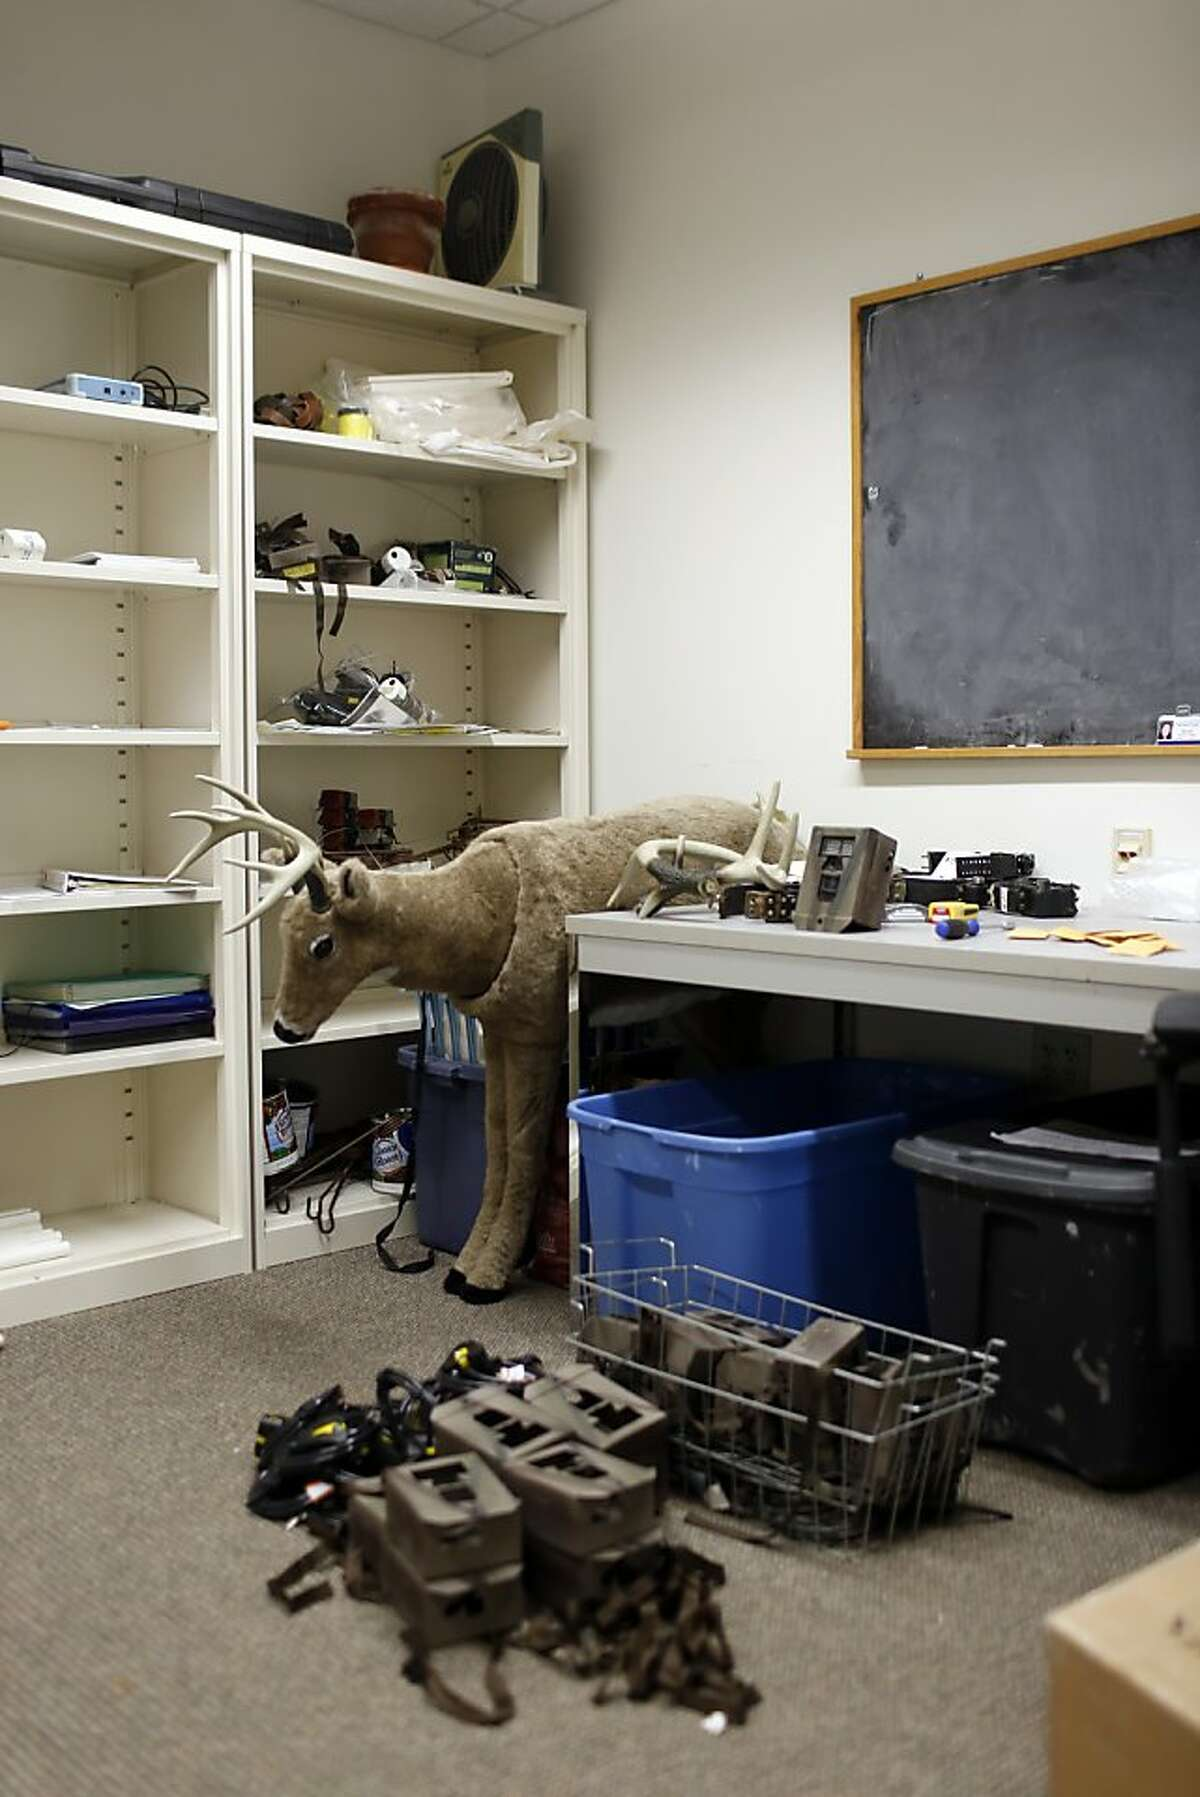 University of California Santa Cruz Associate Professor of Environmental Studies Chris Wilmer workroom filled with tools used to observe and track mountain lions on the UCSC campus in Santa Cruz, Calif. on June 24, 2013.